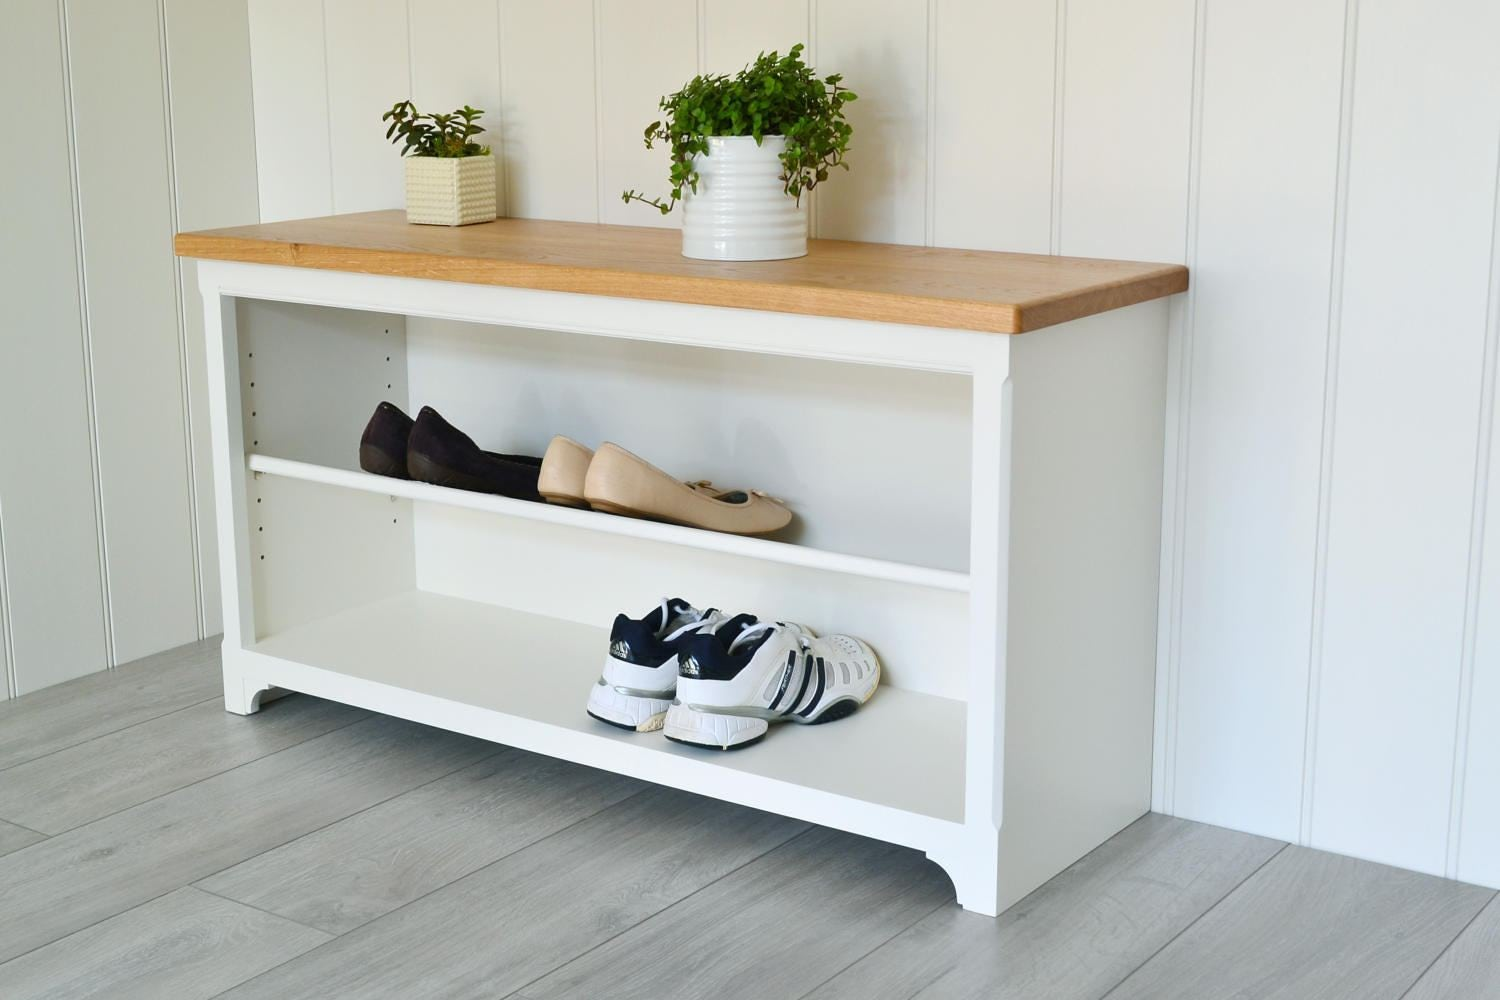 Hall Shoe Rack Adjustable Shelves Oak Top Shelves Shelving Unit Hallway Bedroom Bookshelf Hallway bench Shoe Storage.